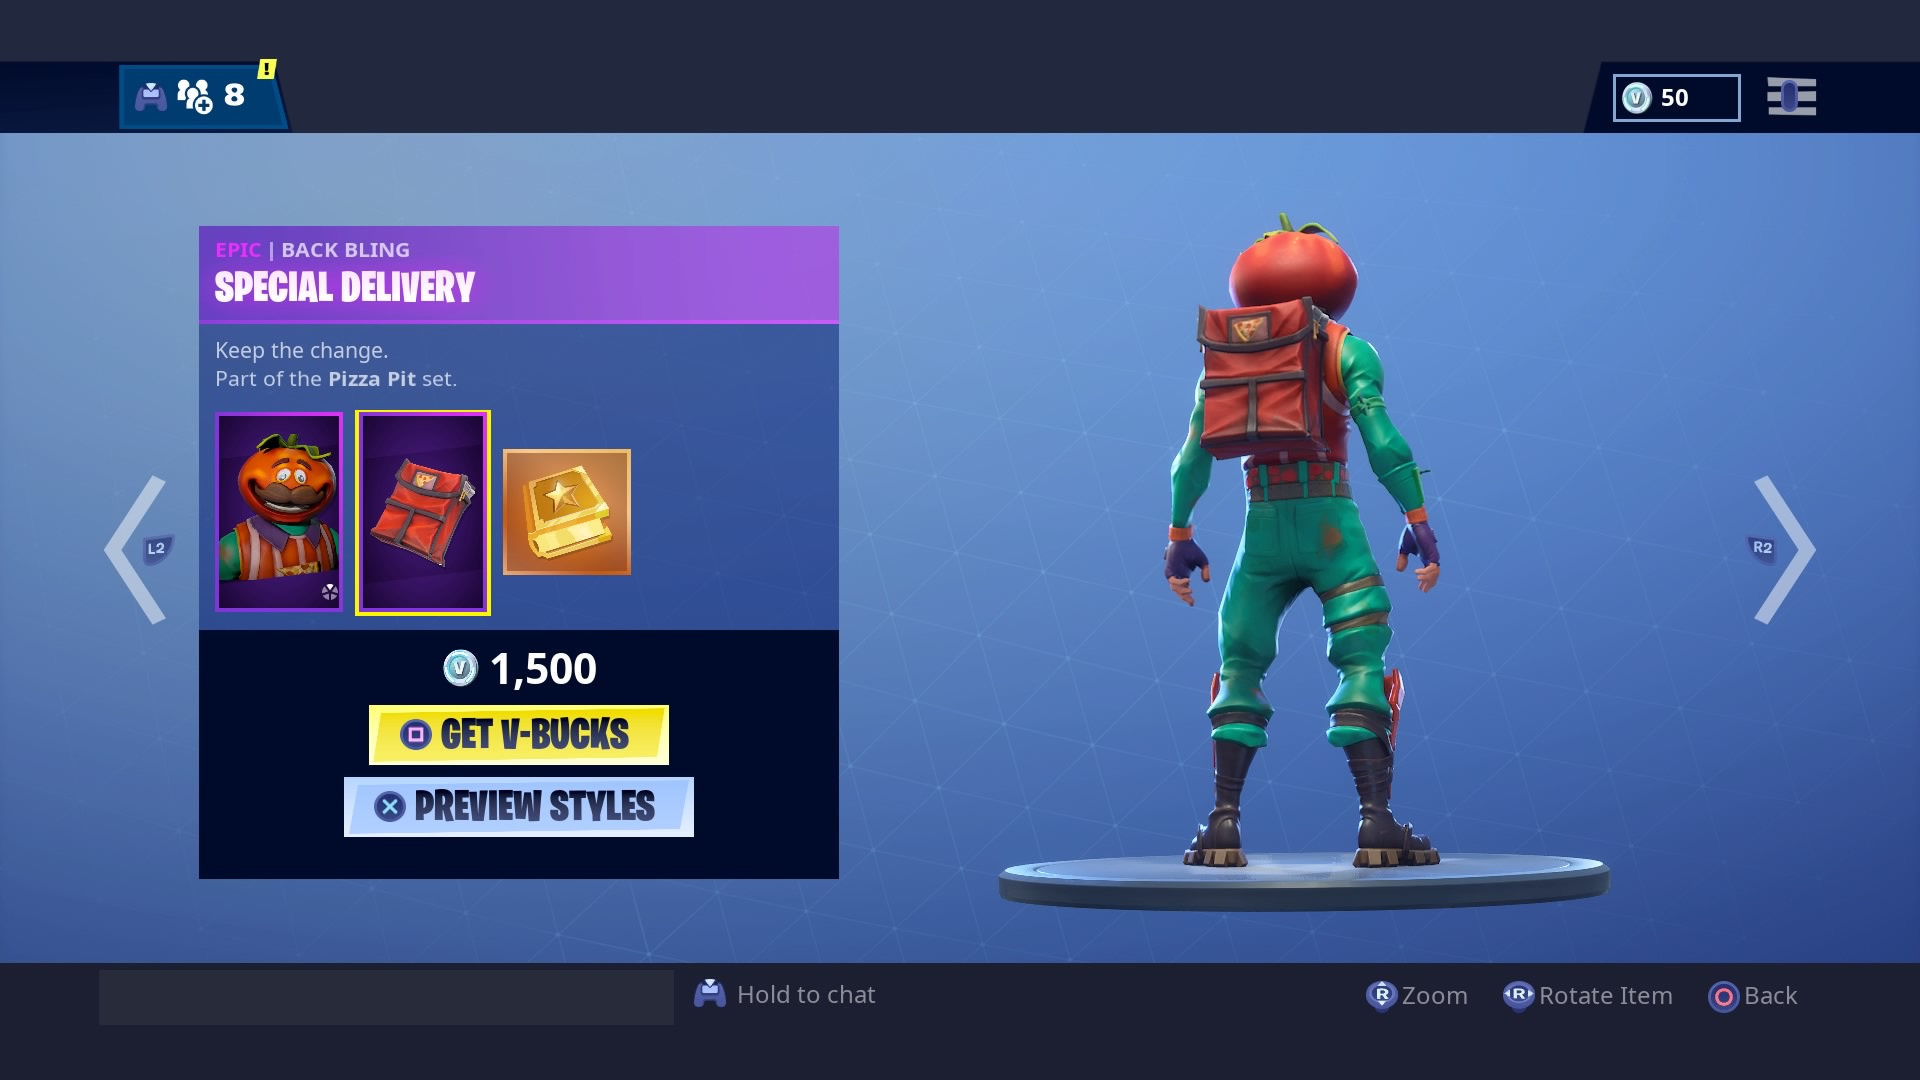 fortnite special delivery epic back bling4k wallpaper 2622